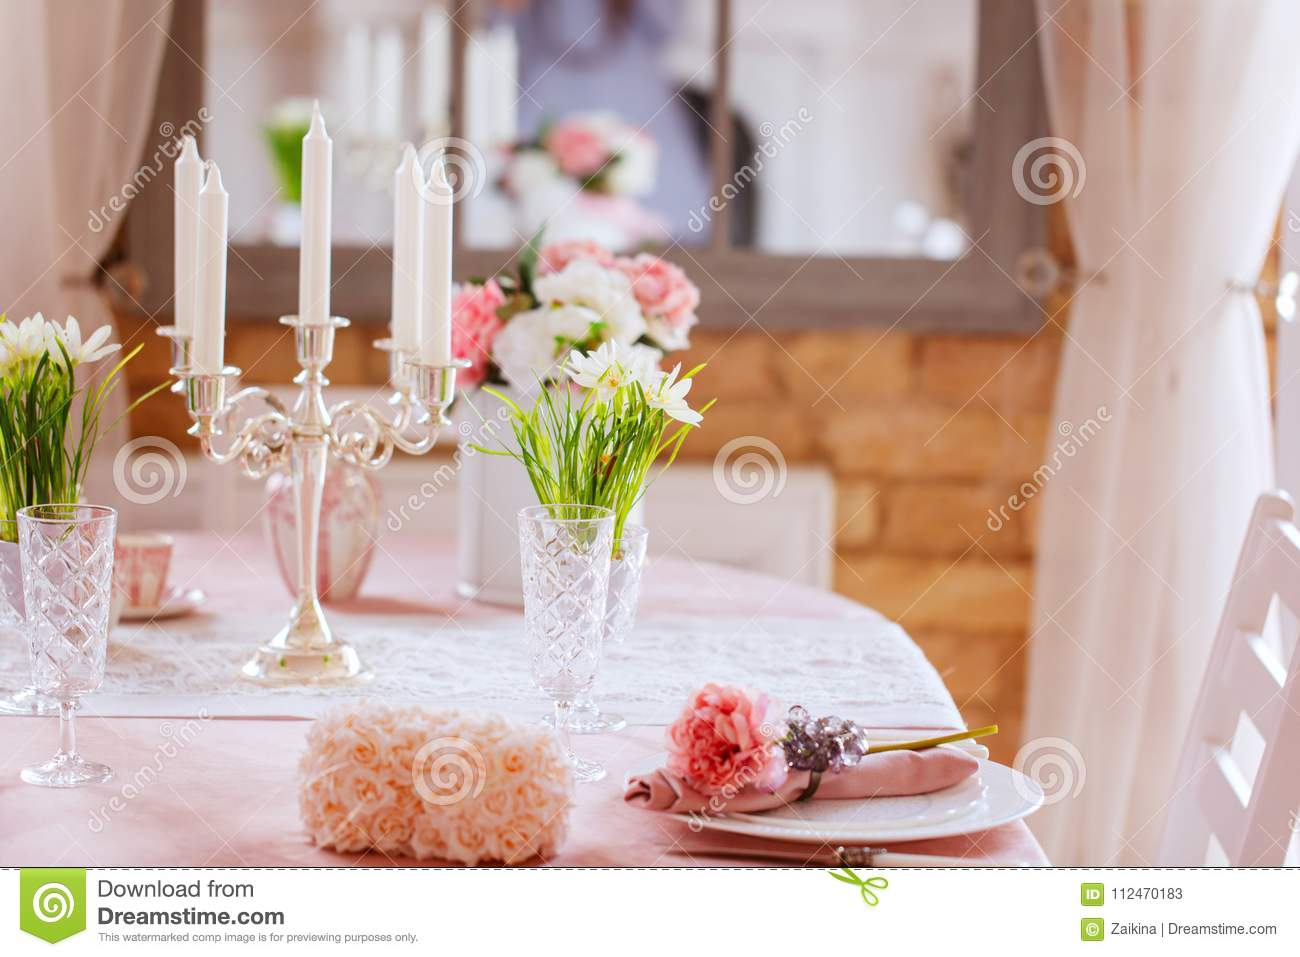 Festive Dinner Table Decoration Spring Holiday Decor Stock Image